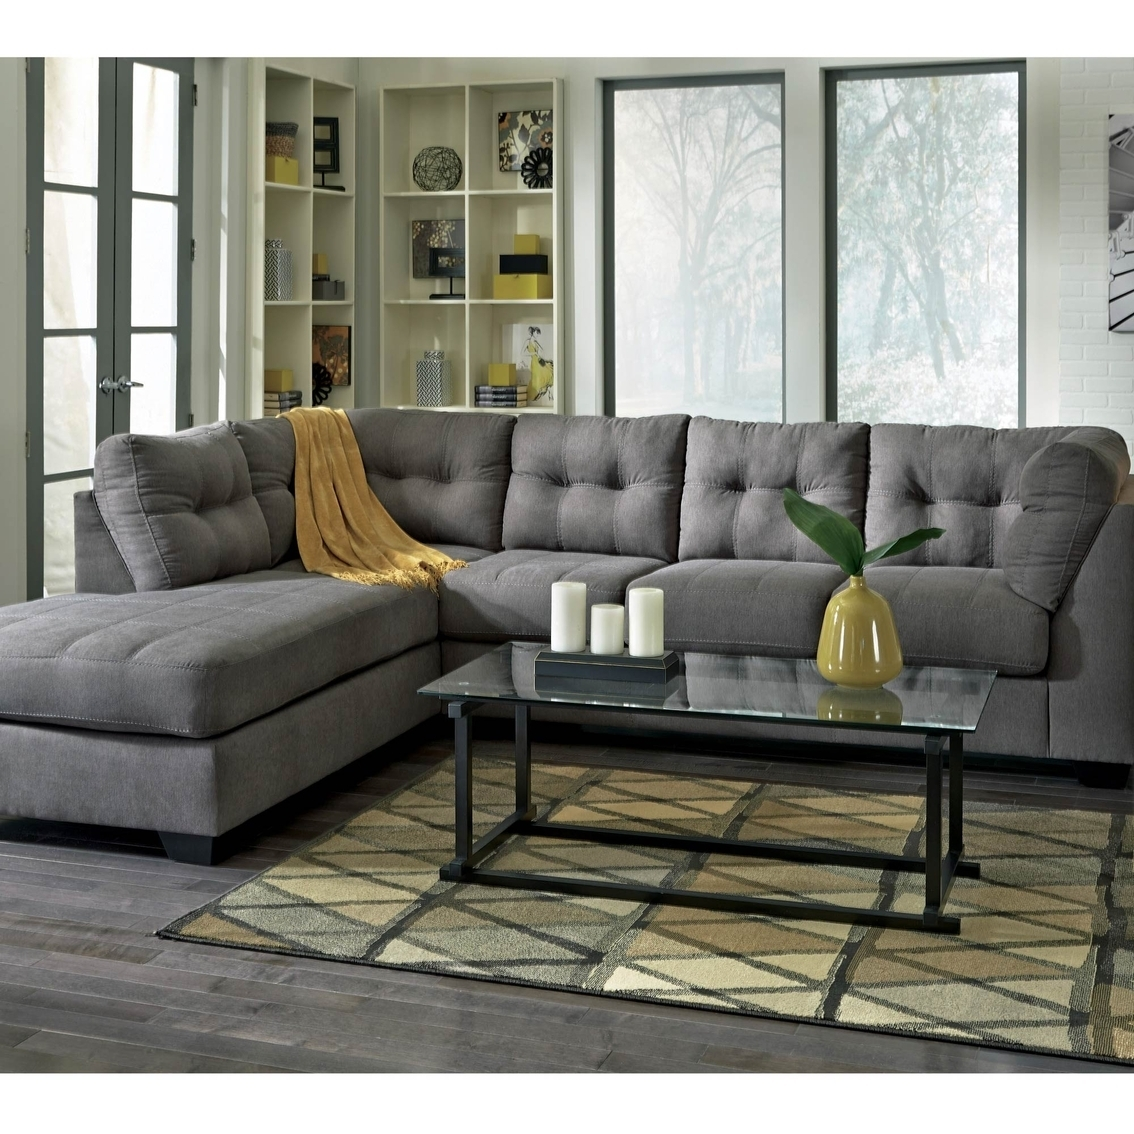 Benchcraft Maier 2 Pc. Sectional Sofa With Left Corner Chaise with regard to Meyer 3 Piece Sectionals With Laf Chaise (Image 5 of 30)